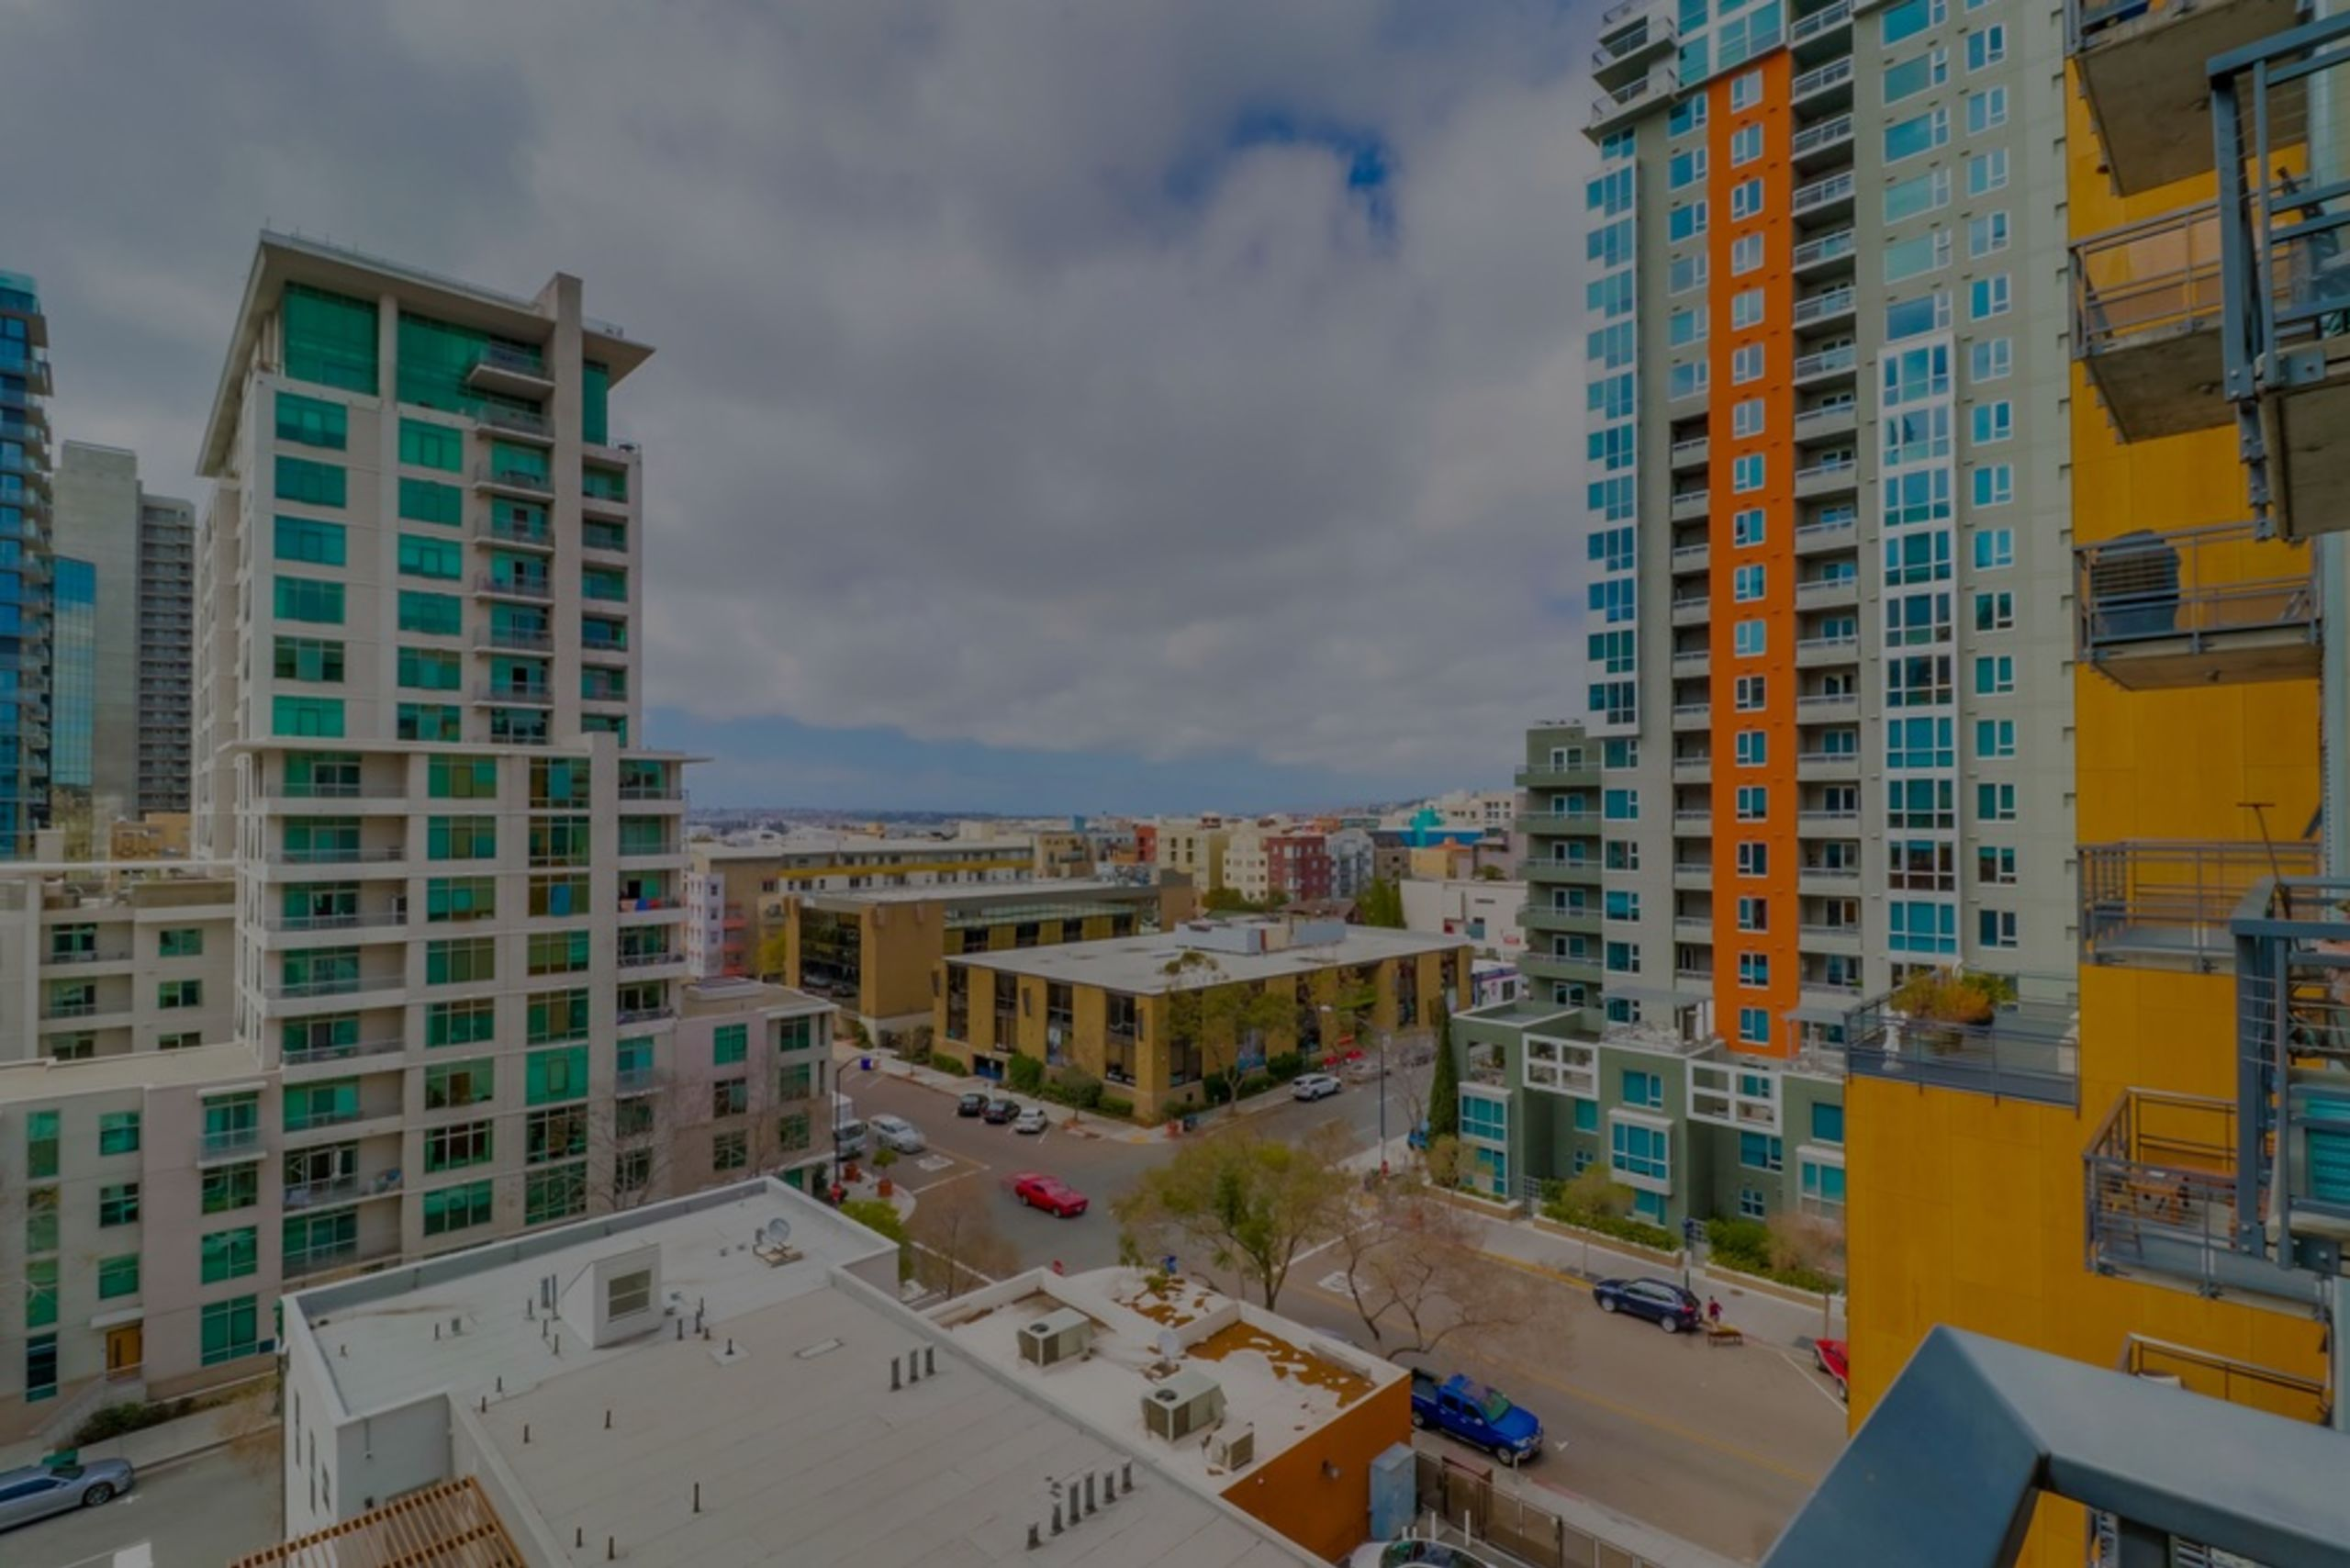 1494 Union St Unit 708 San Diego, CA 92101